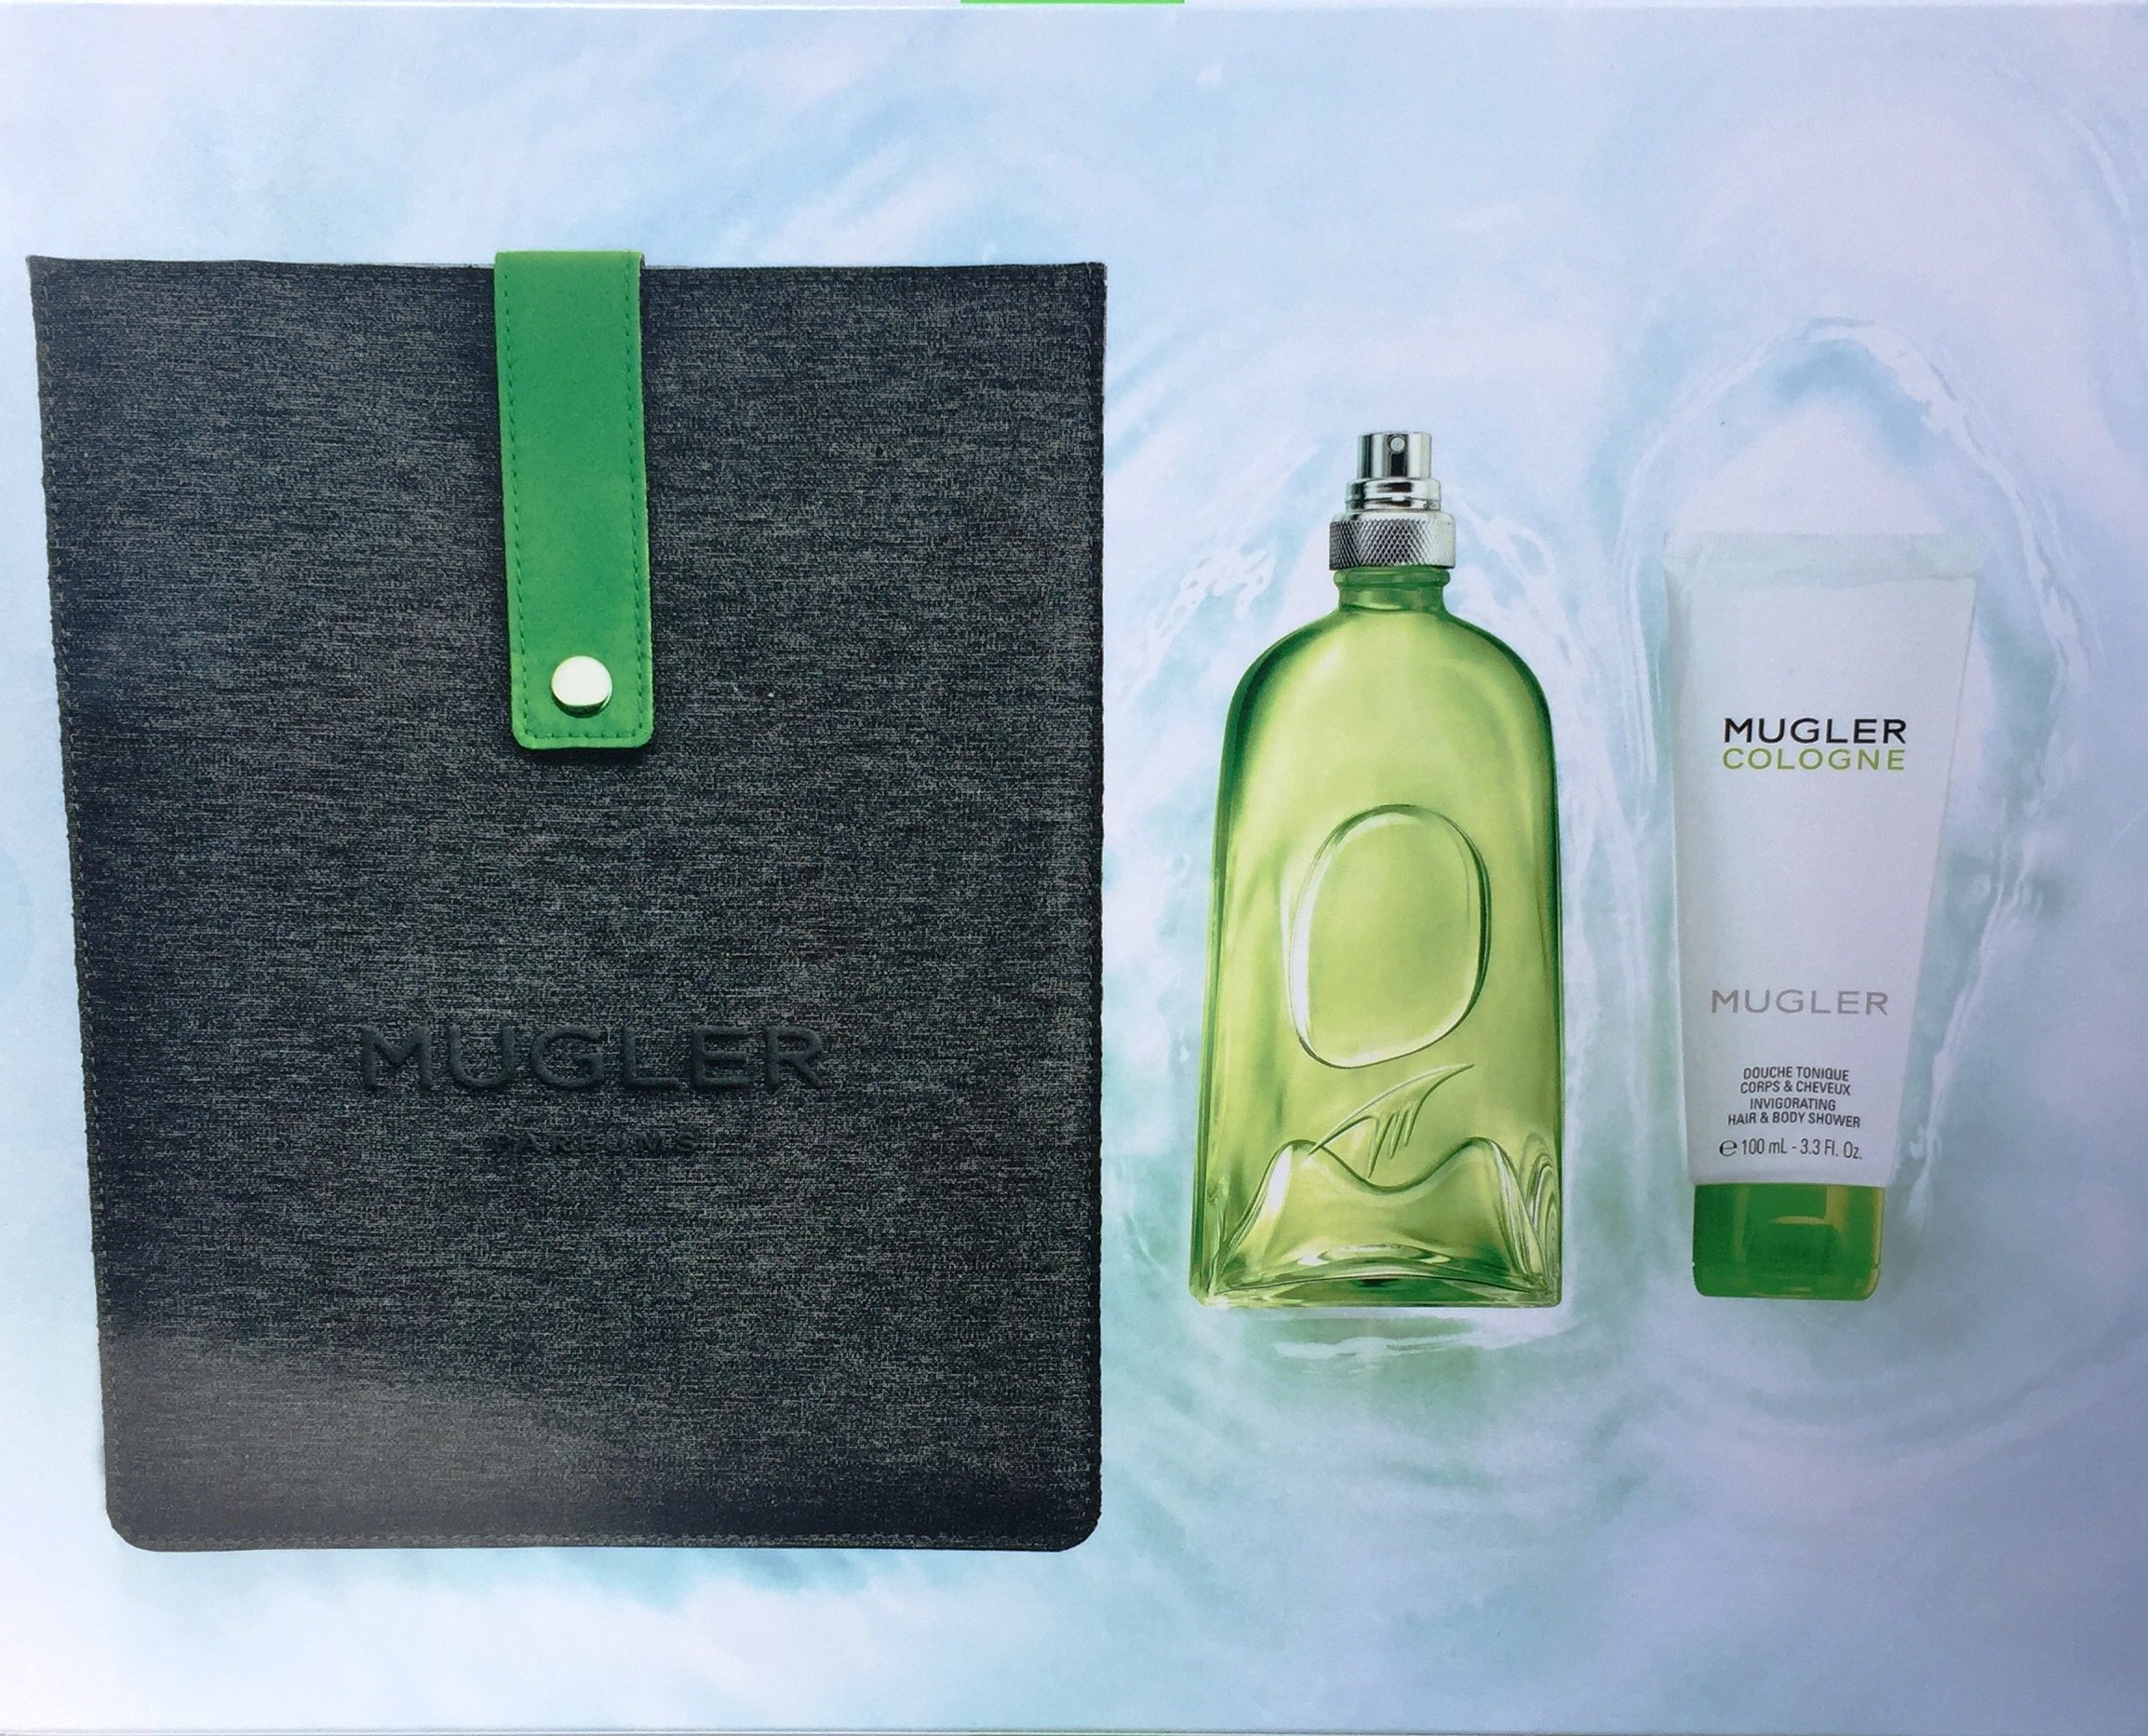 THIERRY MUGLER COLOGNE EDT 300 ML + GEL 100 ML + NECESER SET REGALO